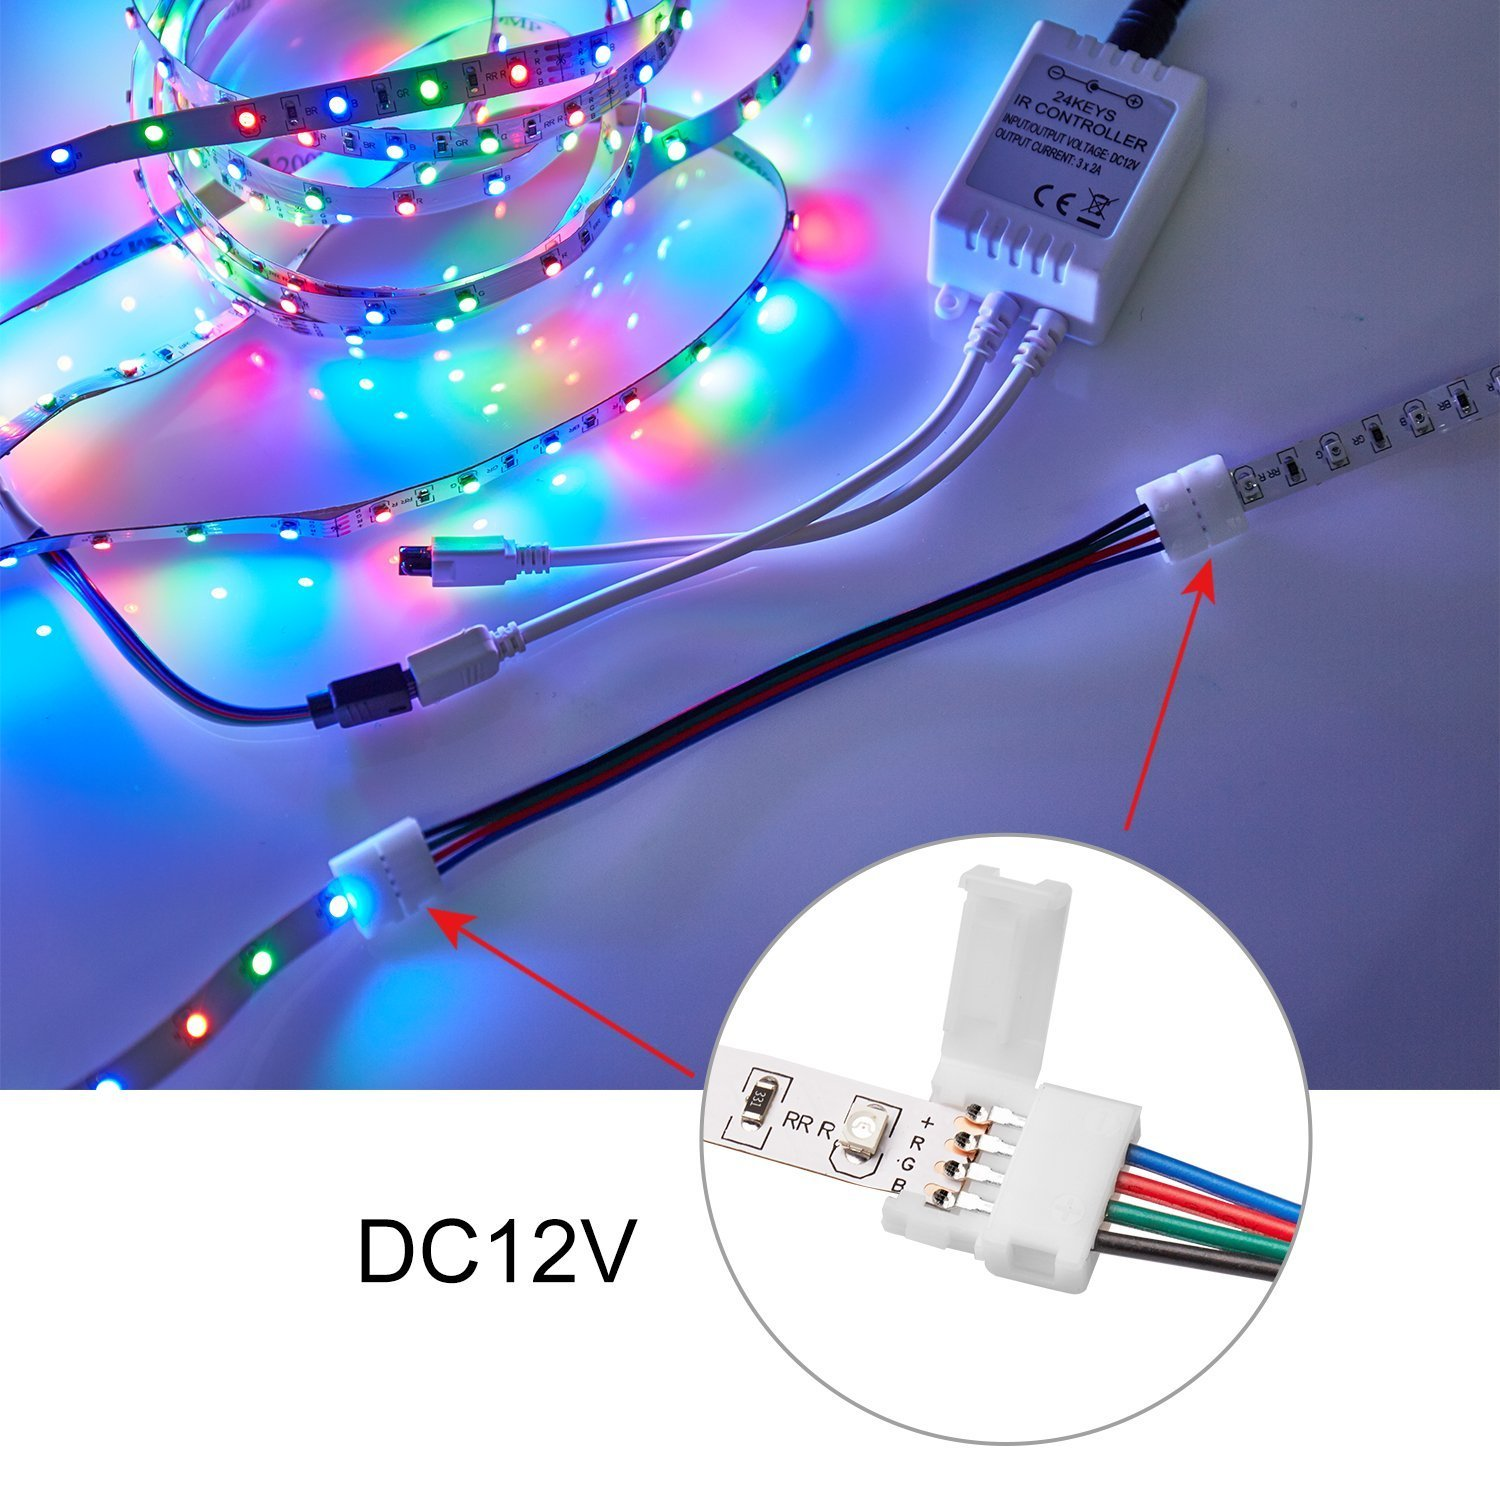 5050 4 Pin Rgb Led Strip Light Connector Kit With 10mm Quick Adapter Wiring Multi Color 5050smd Pbc Connectors 2 Way Splitter Cablergb Extension Cable